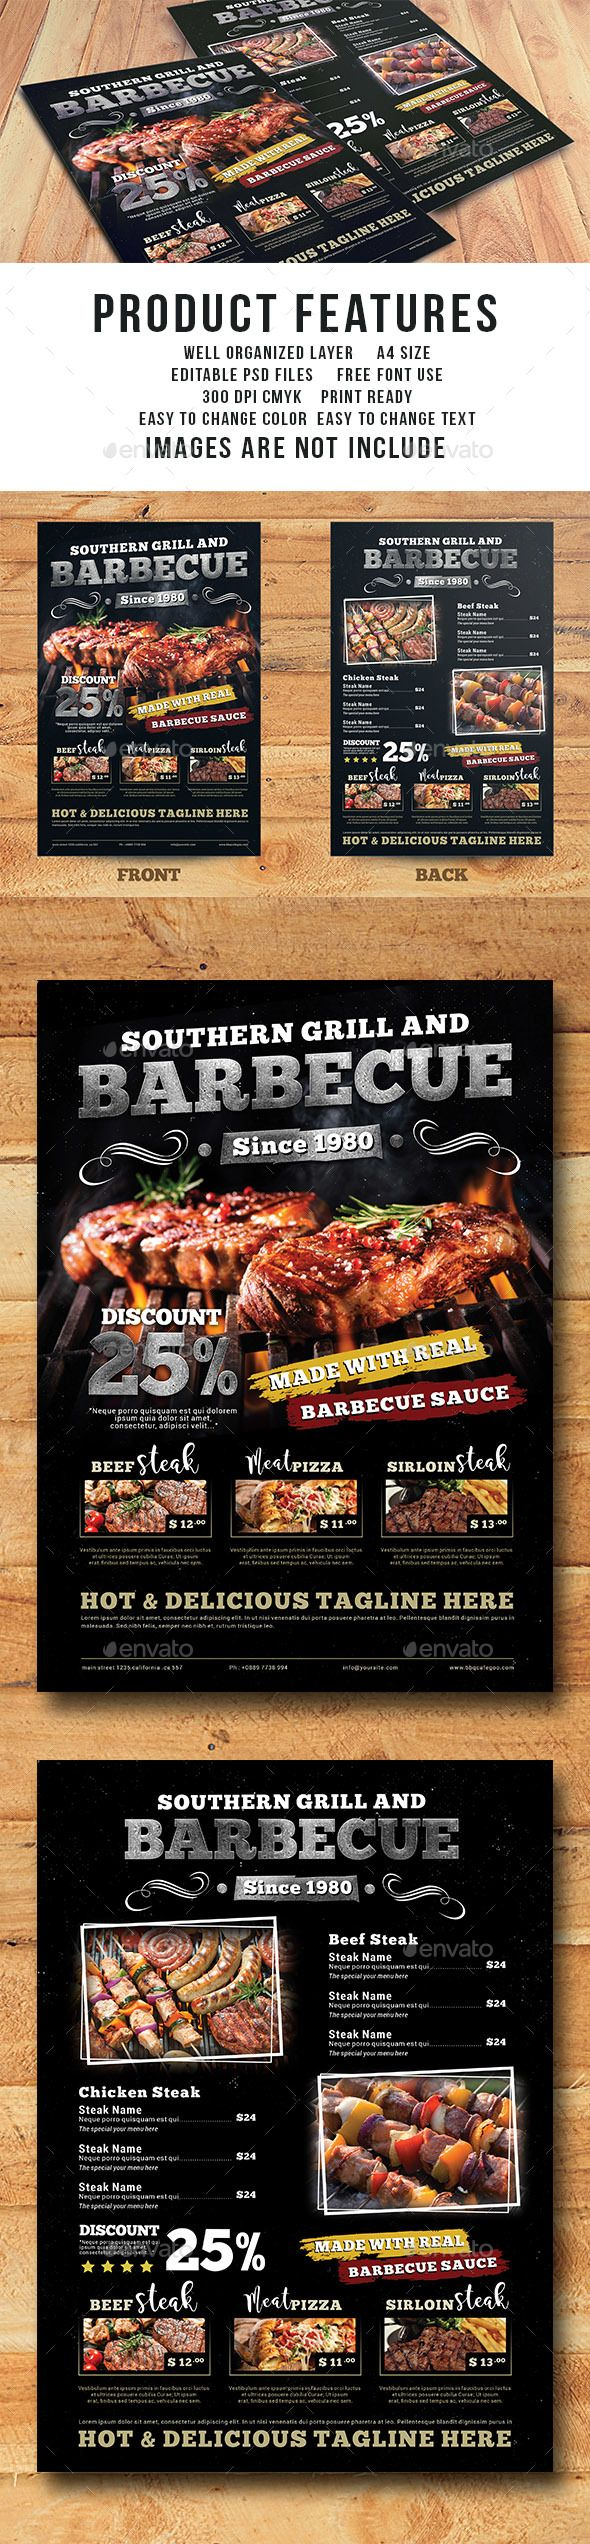 Grill Barbecue Restaurant Menu Template  — PSD Template #meat #chicken • Download ➝ https://graphicriver.net/item/grill-barbecue-restaurant-menu-template/18024411?ref=pxcr